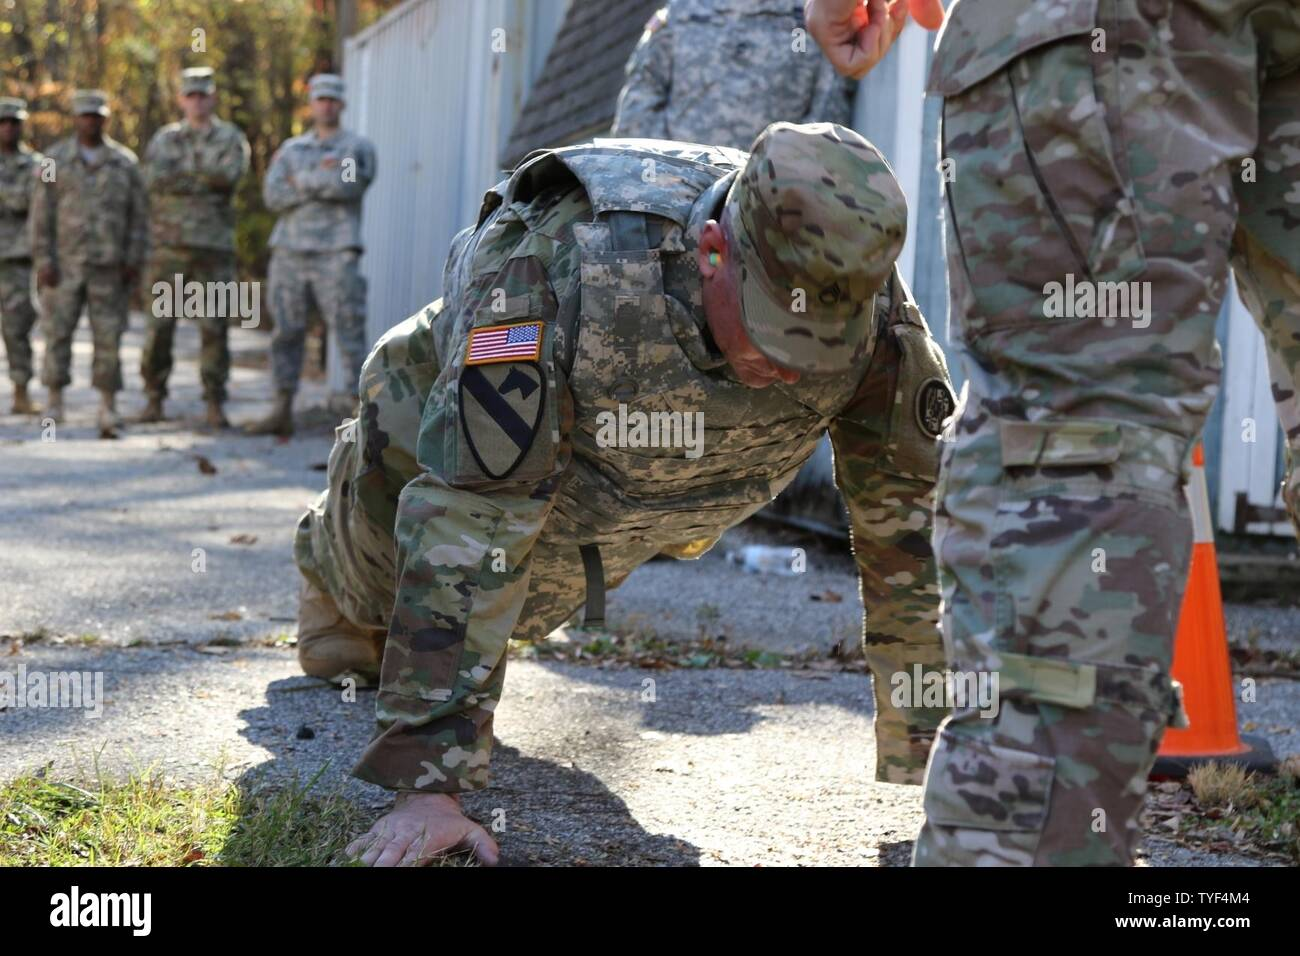 Soldier from the 58th Expeditionary Military Intelligence Brigade (EMIB) competed in the Soldier and Noncommissioned Officer and Company Grade Officer of the Year Competition, Nov. 5 at Gunpowder Military Reservation, Md. The day-long competition tested Soldiers on numerous warrior tasks and finalized with a seven mile ruck march and live-fire stress shoot. - Stock Image